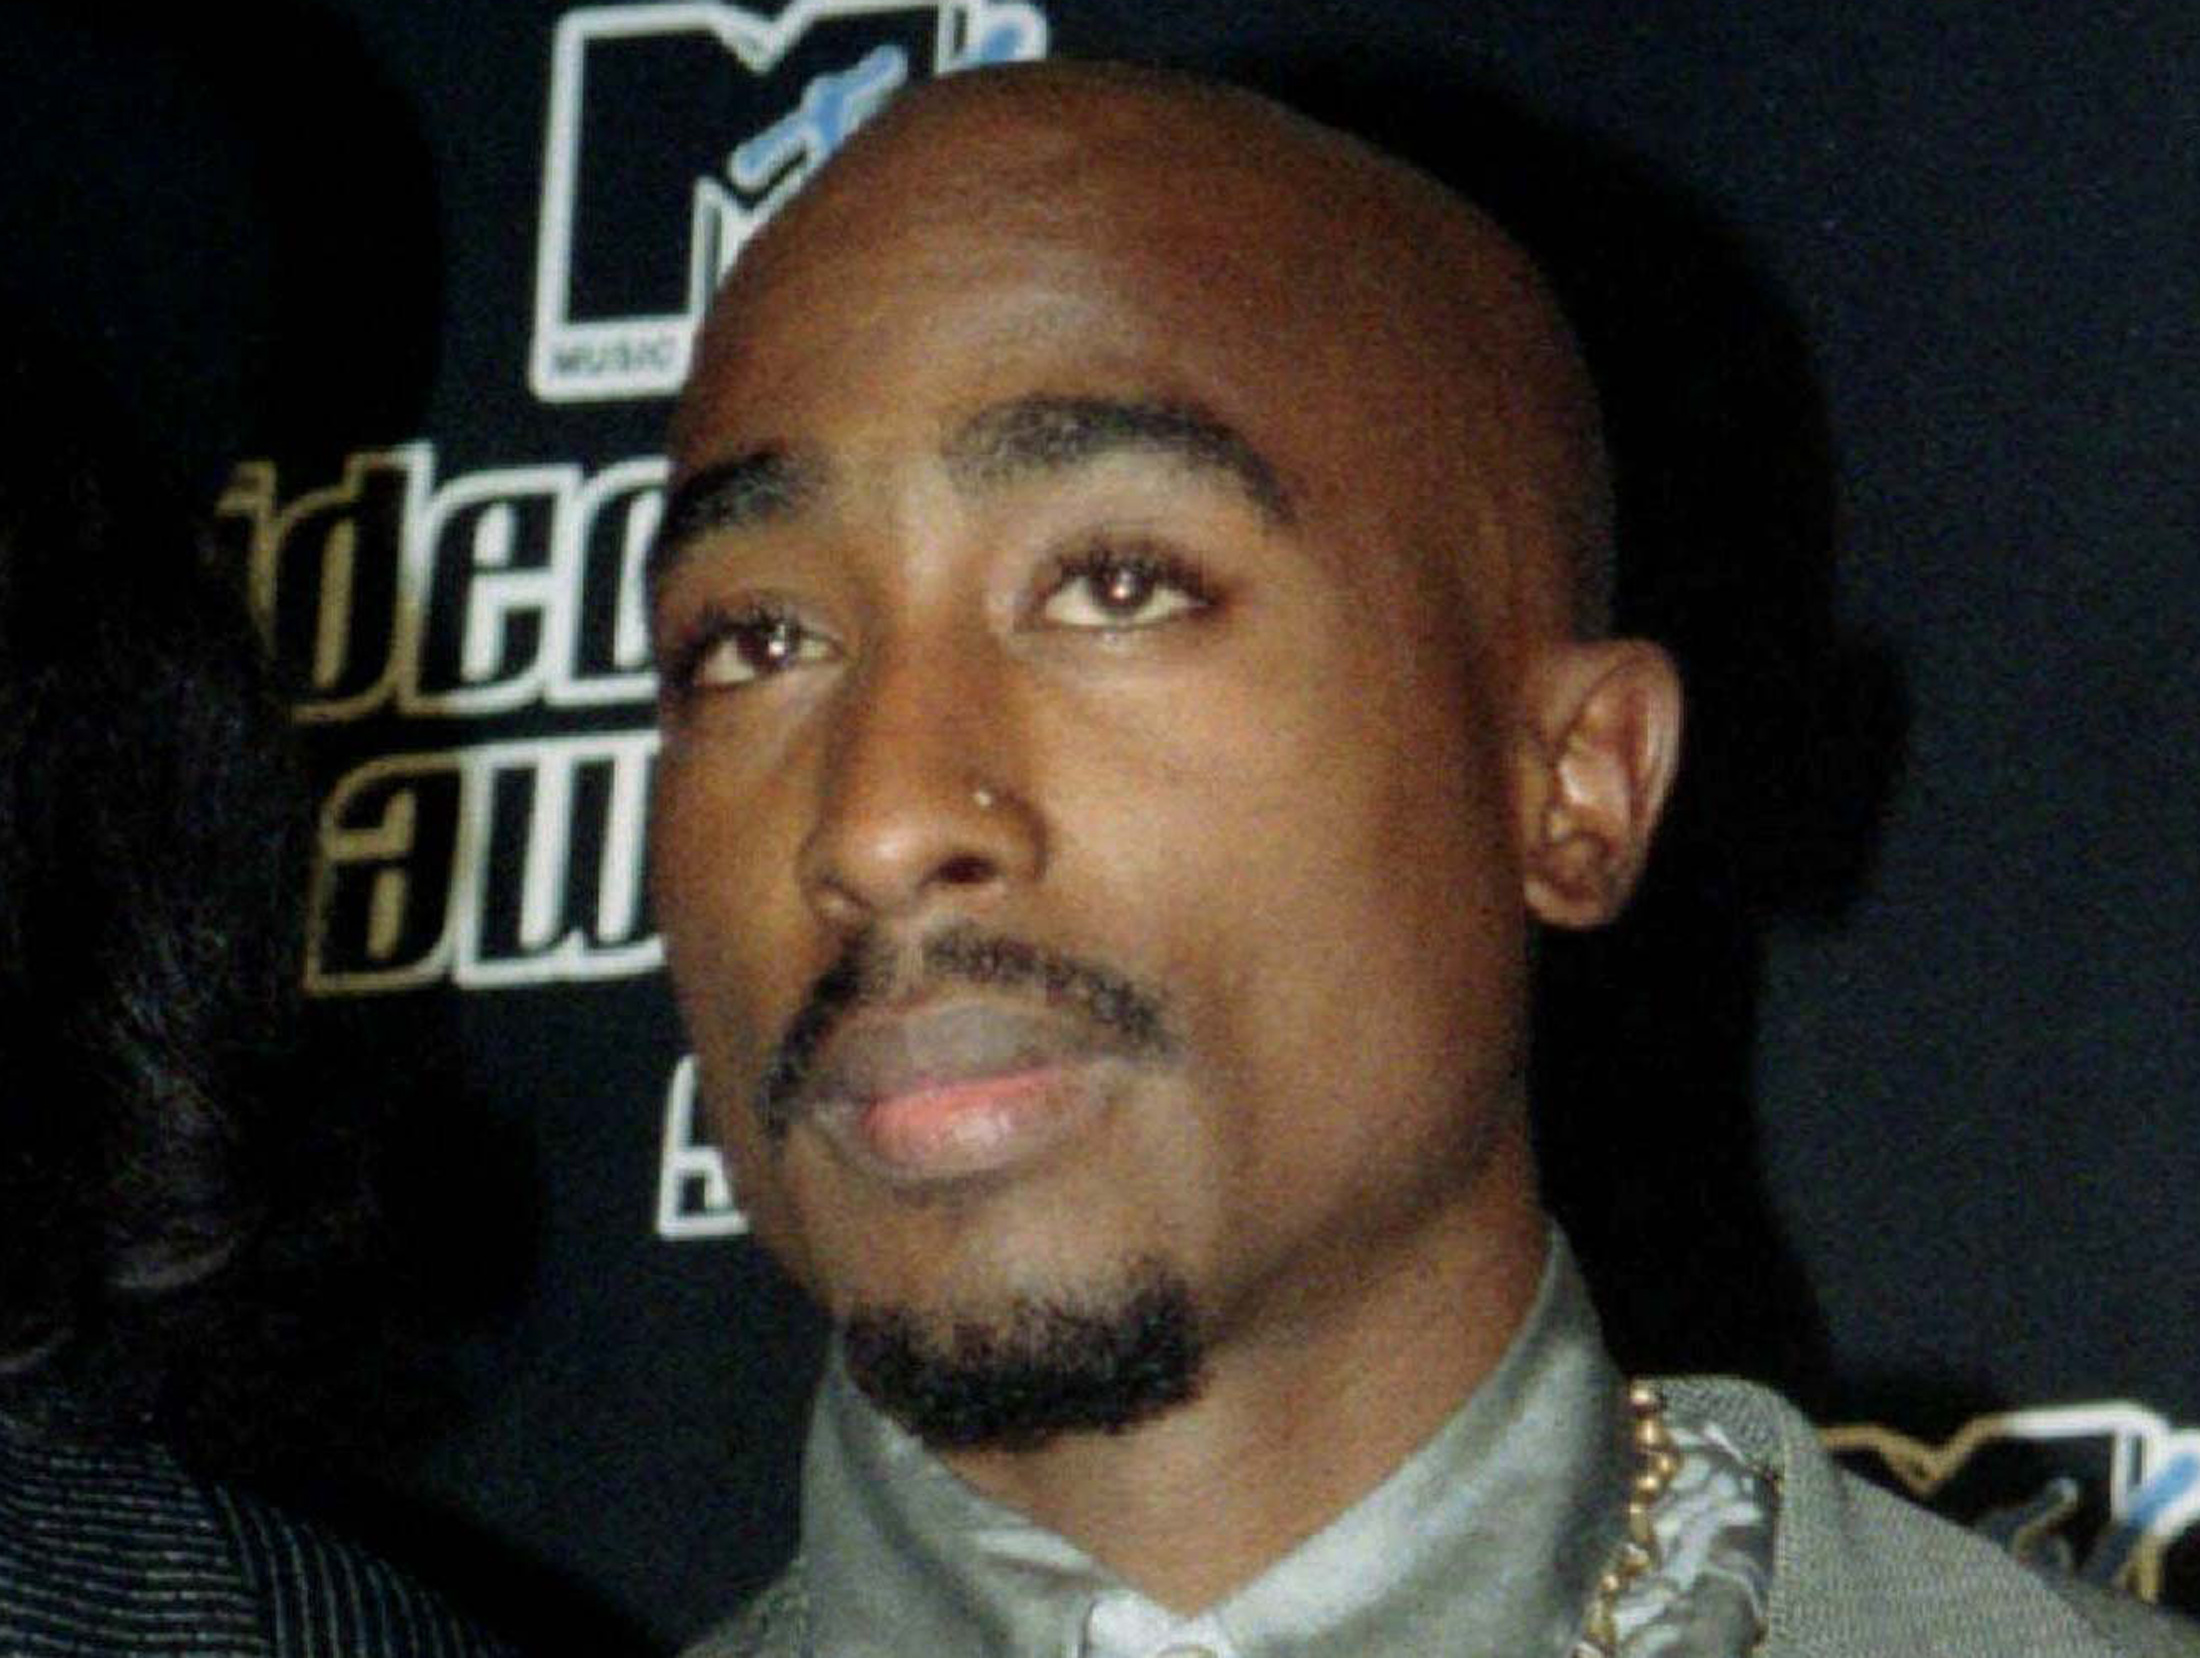 the early life and music successes of rapper tupac amaru shakur